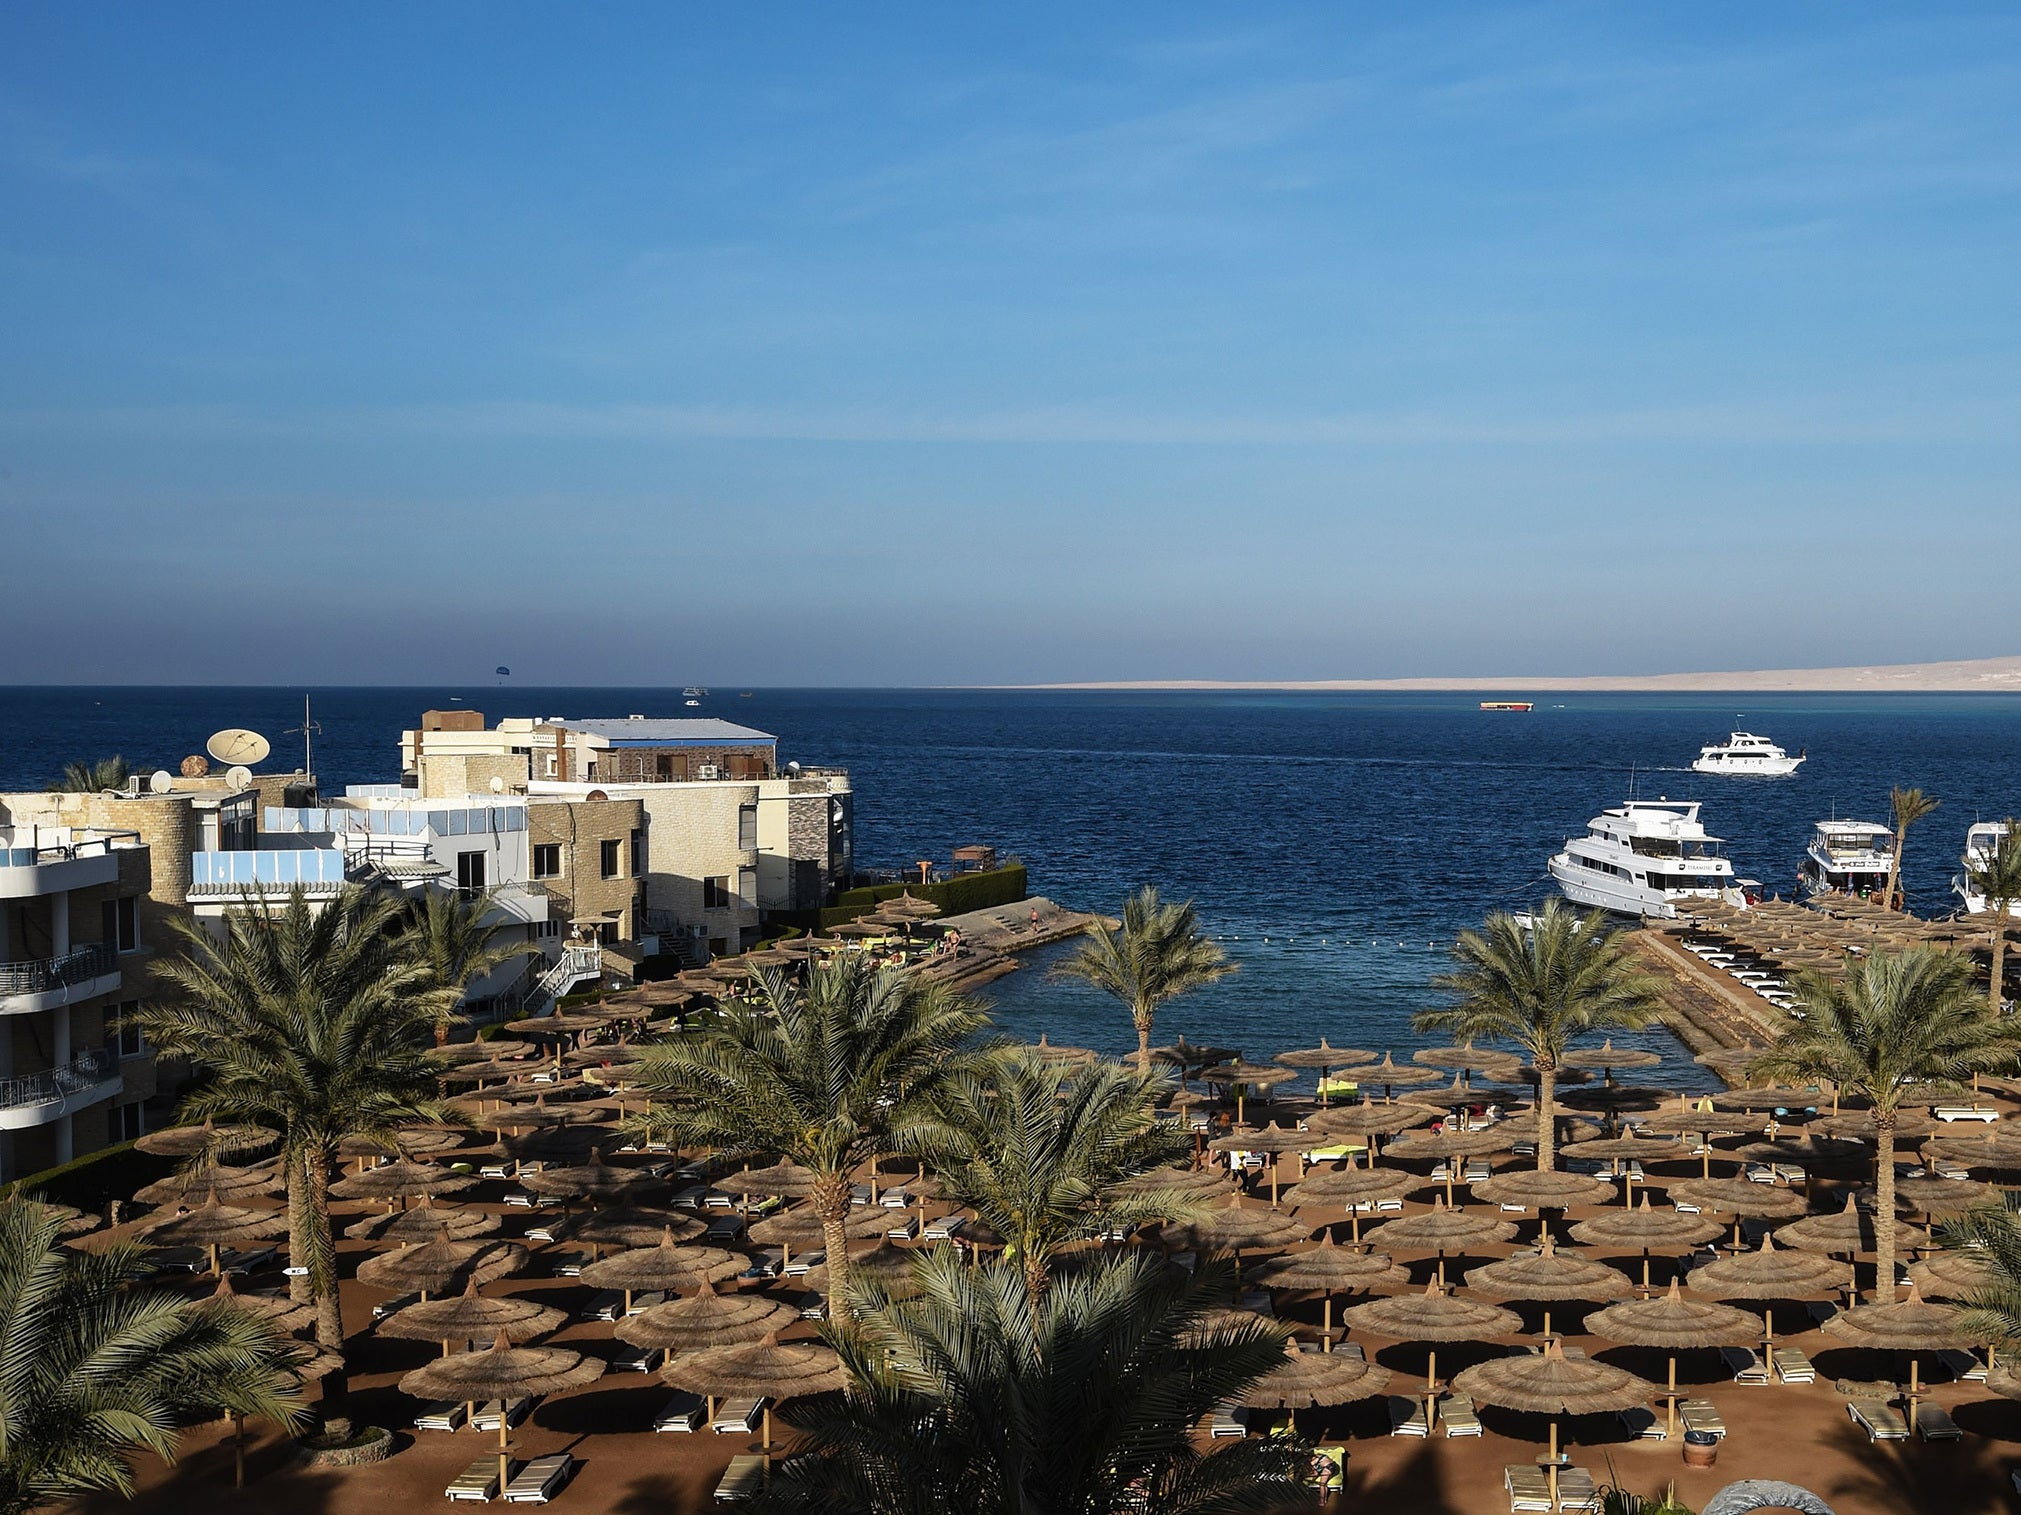 British mother dies after being thrown out of banana boat at same Egyptian resort where couple mysteriously died